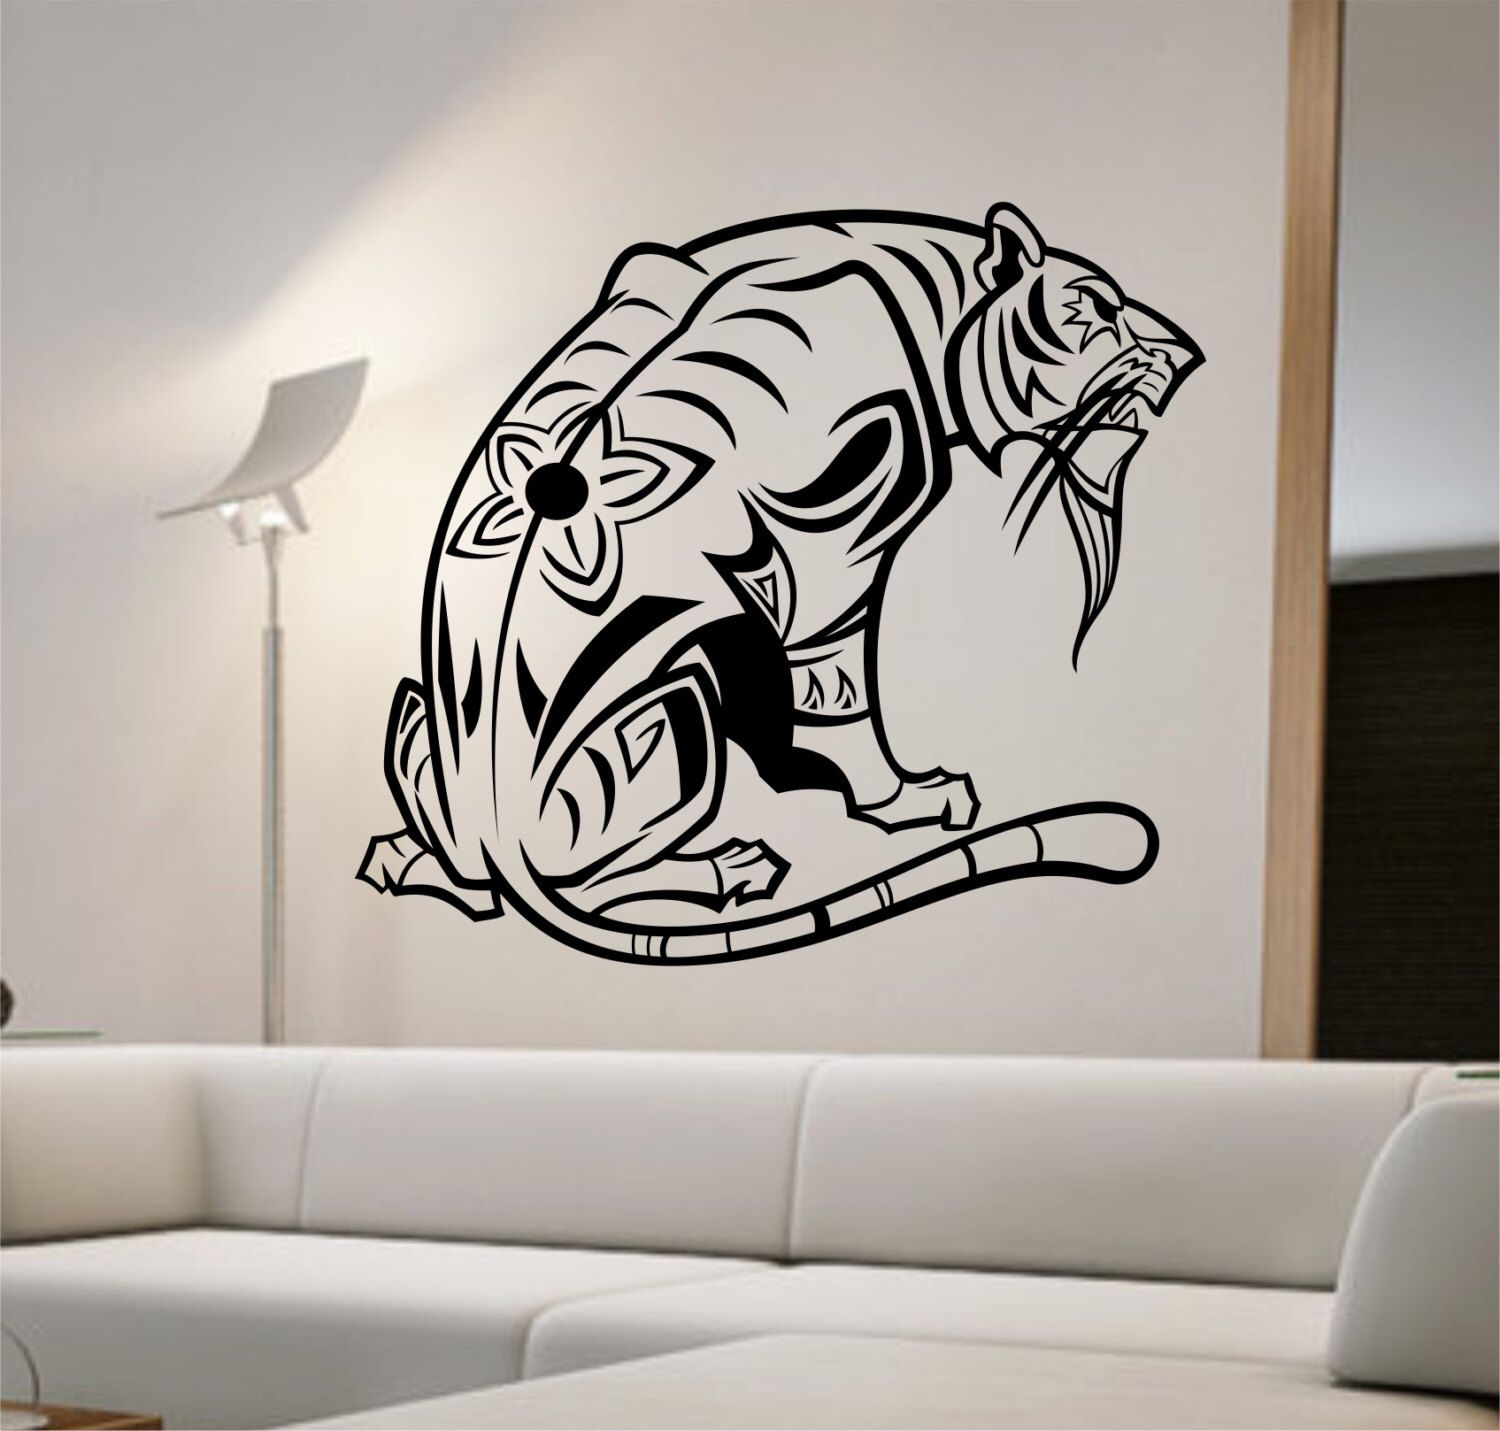 Tiger Wall Decal Sticker Art Decor Bedroom Design Mural  animal lover interior design home decor by StateOfTheWall on Etsy https://www.etsy.com/listing/222217964/tiger-wall-decal-sticker-art-decor